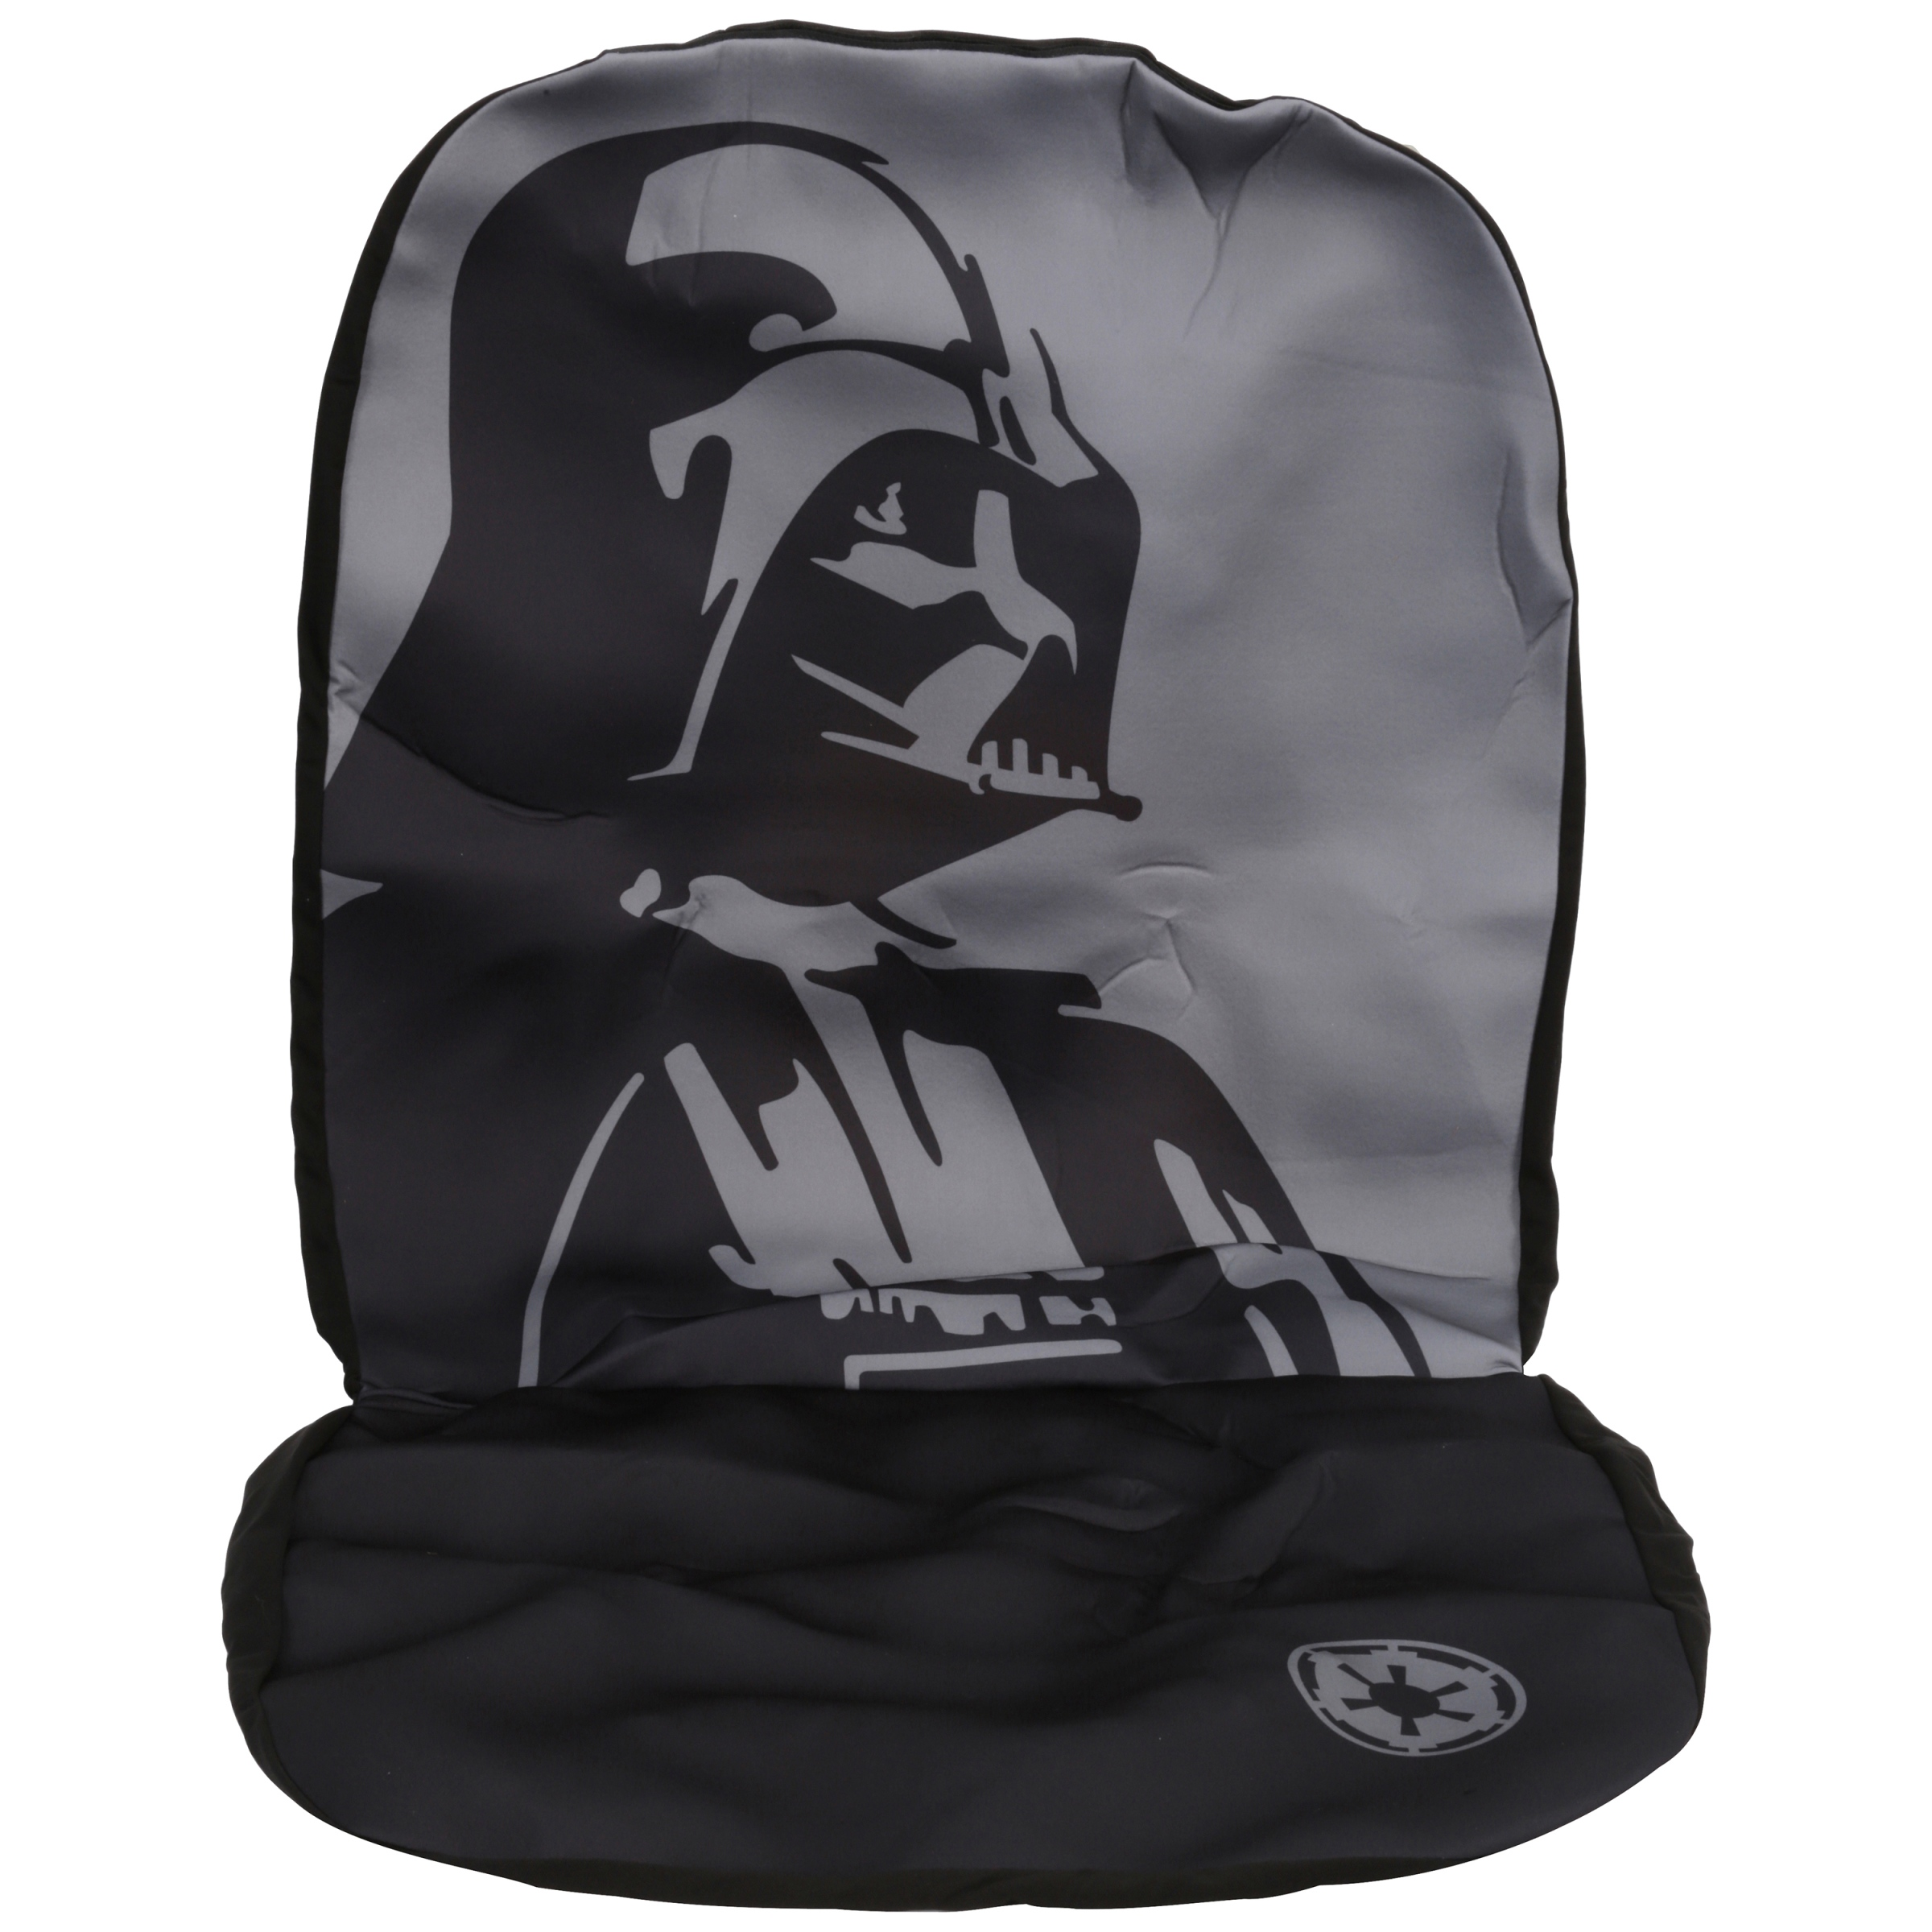 Star Wars™ Vader Low Back Seat Cover with Headrest Cover